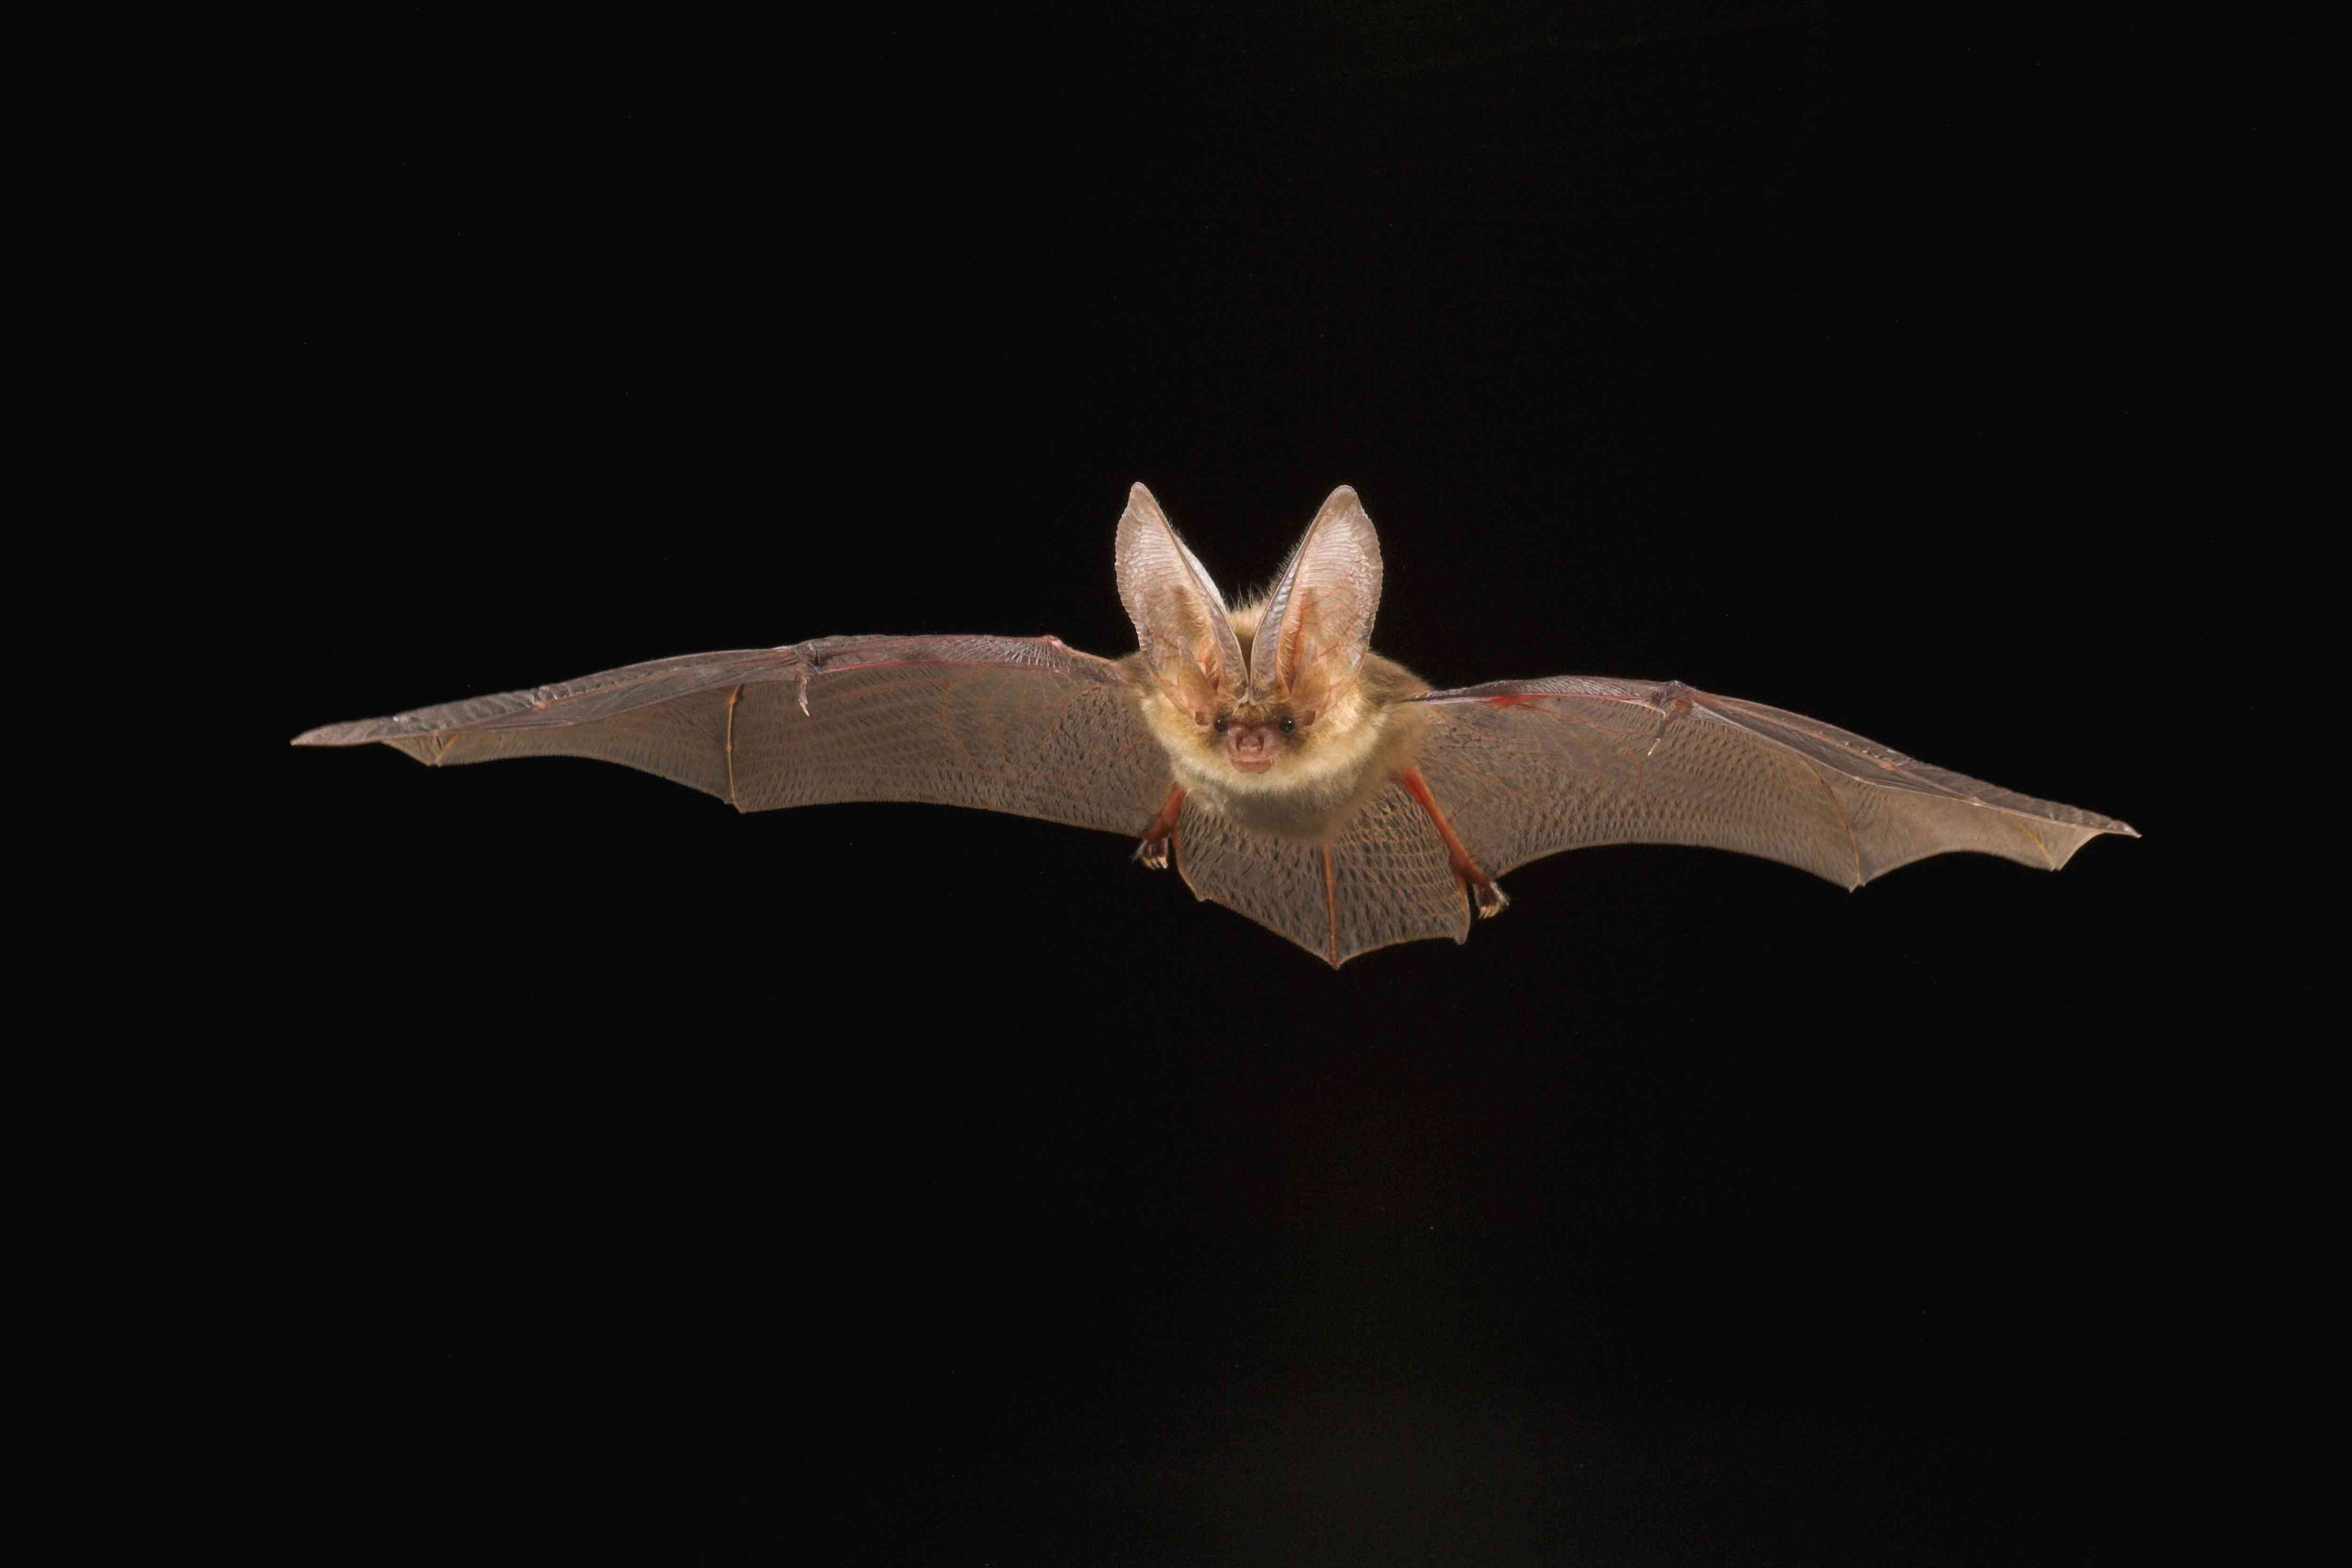 A brown bat with long ears flies in front of a black background